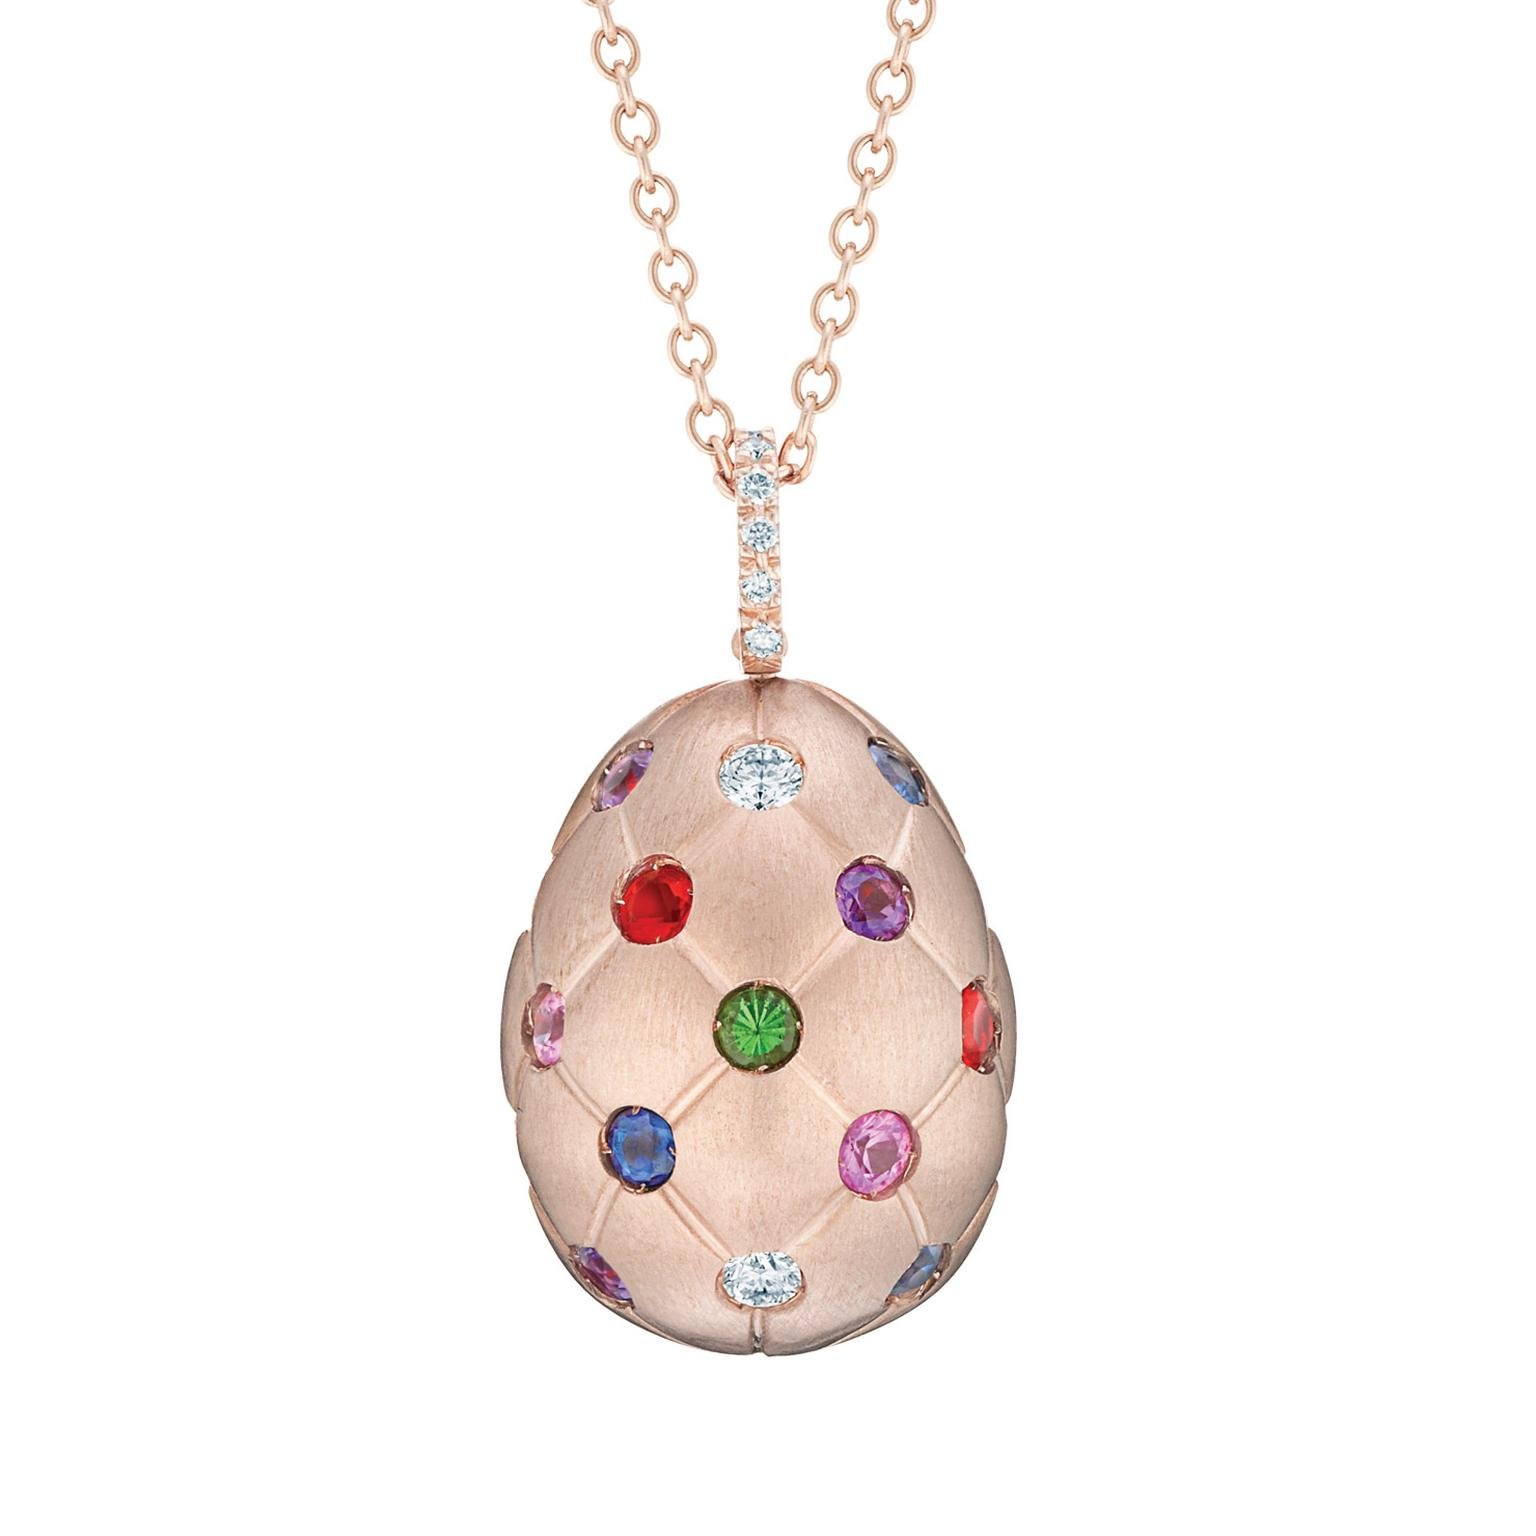 Treillage multicolour gemstone egg pendant faberg the treillage multicolour gemstone egg pendant aloadofball Choice Image